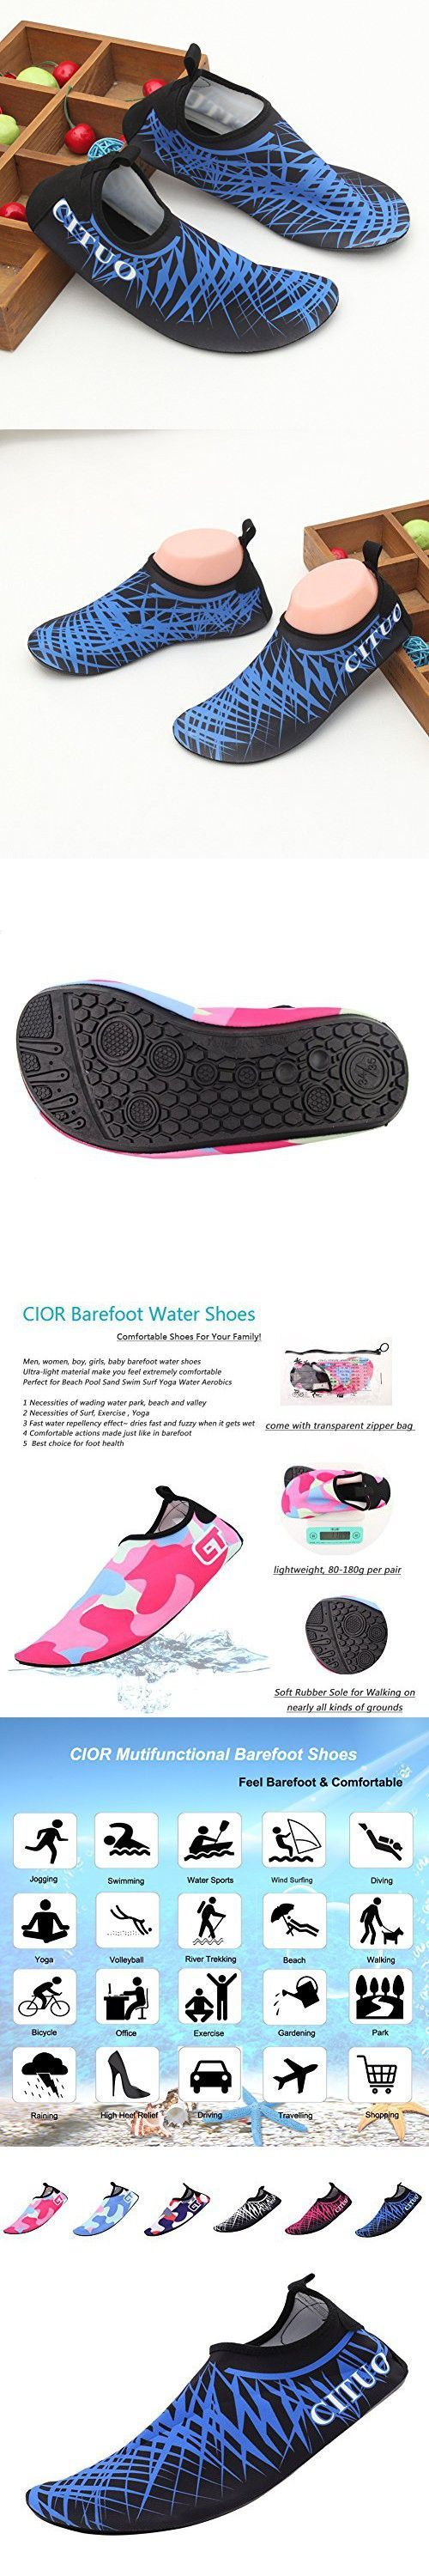 CIOR Mutifunctional Barefoot Shoes Men Women and Kids Quick-Dry Water Shoes Lightweight Aqua Socks For Beach Pool Surf Yoga Exercise ,CT1605,blue,46.47 #watershoes